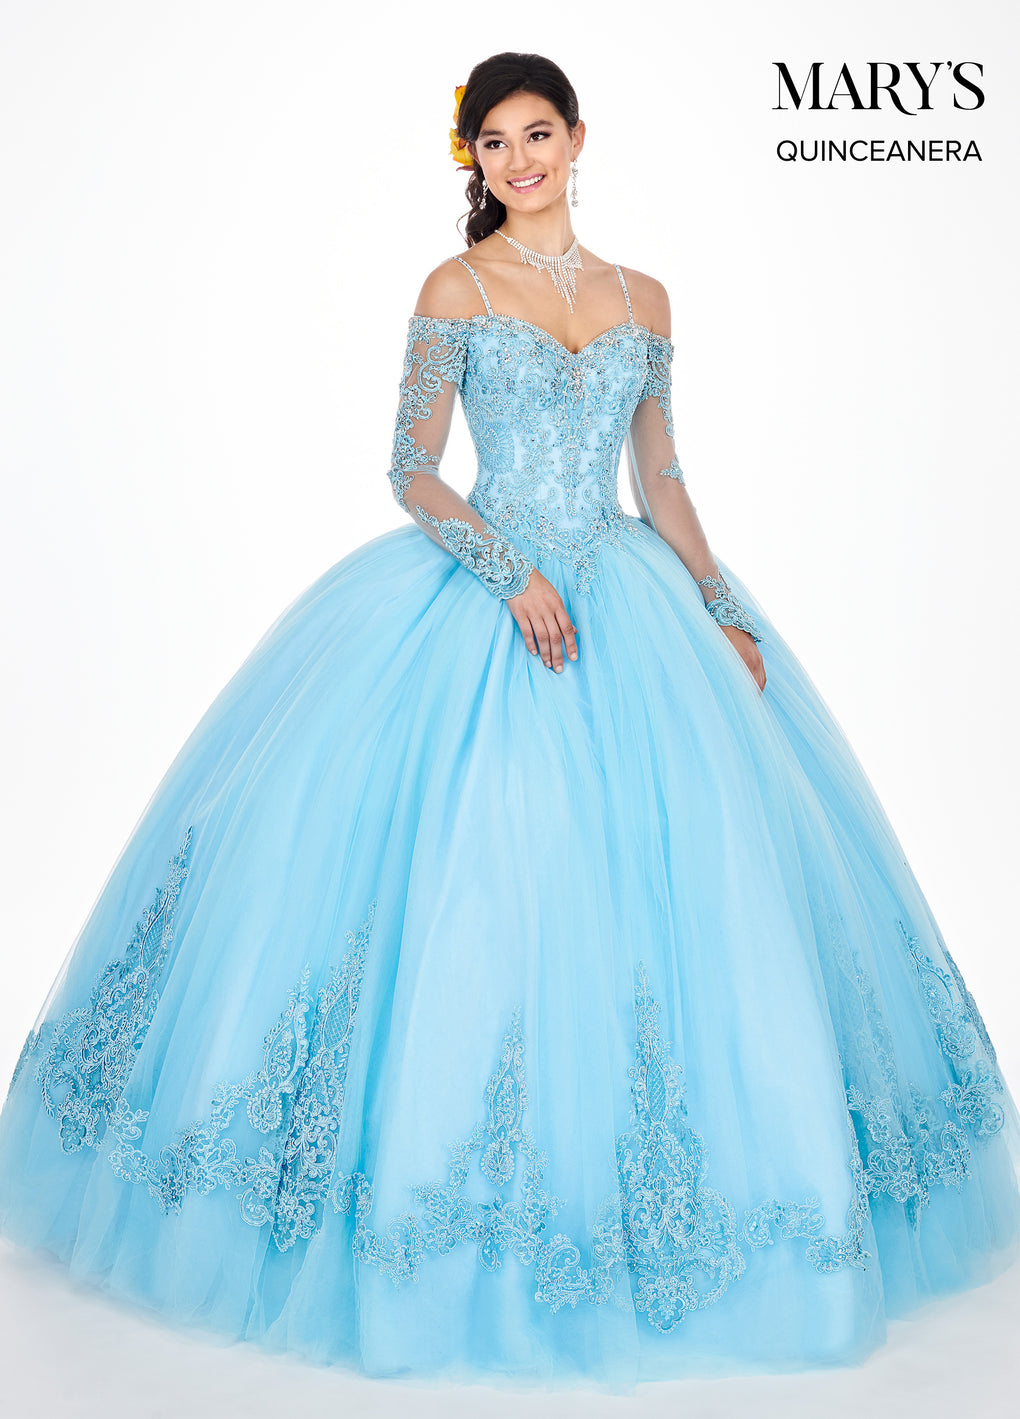 Marys Quinceanera Dresses in Baby Blue or Blush Color